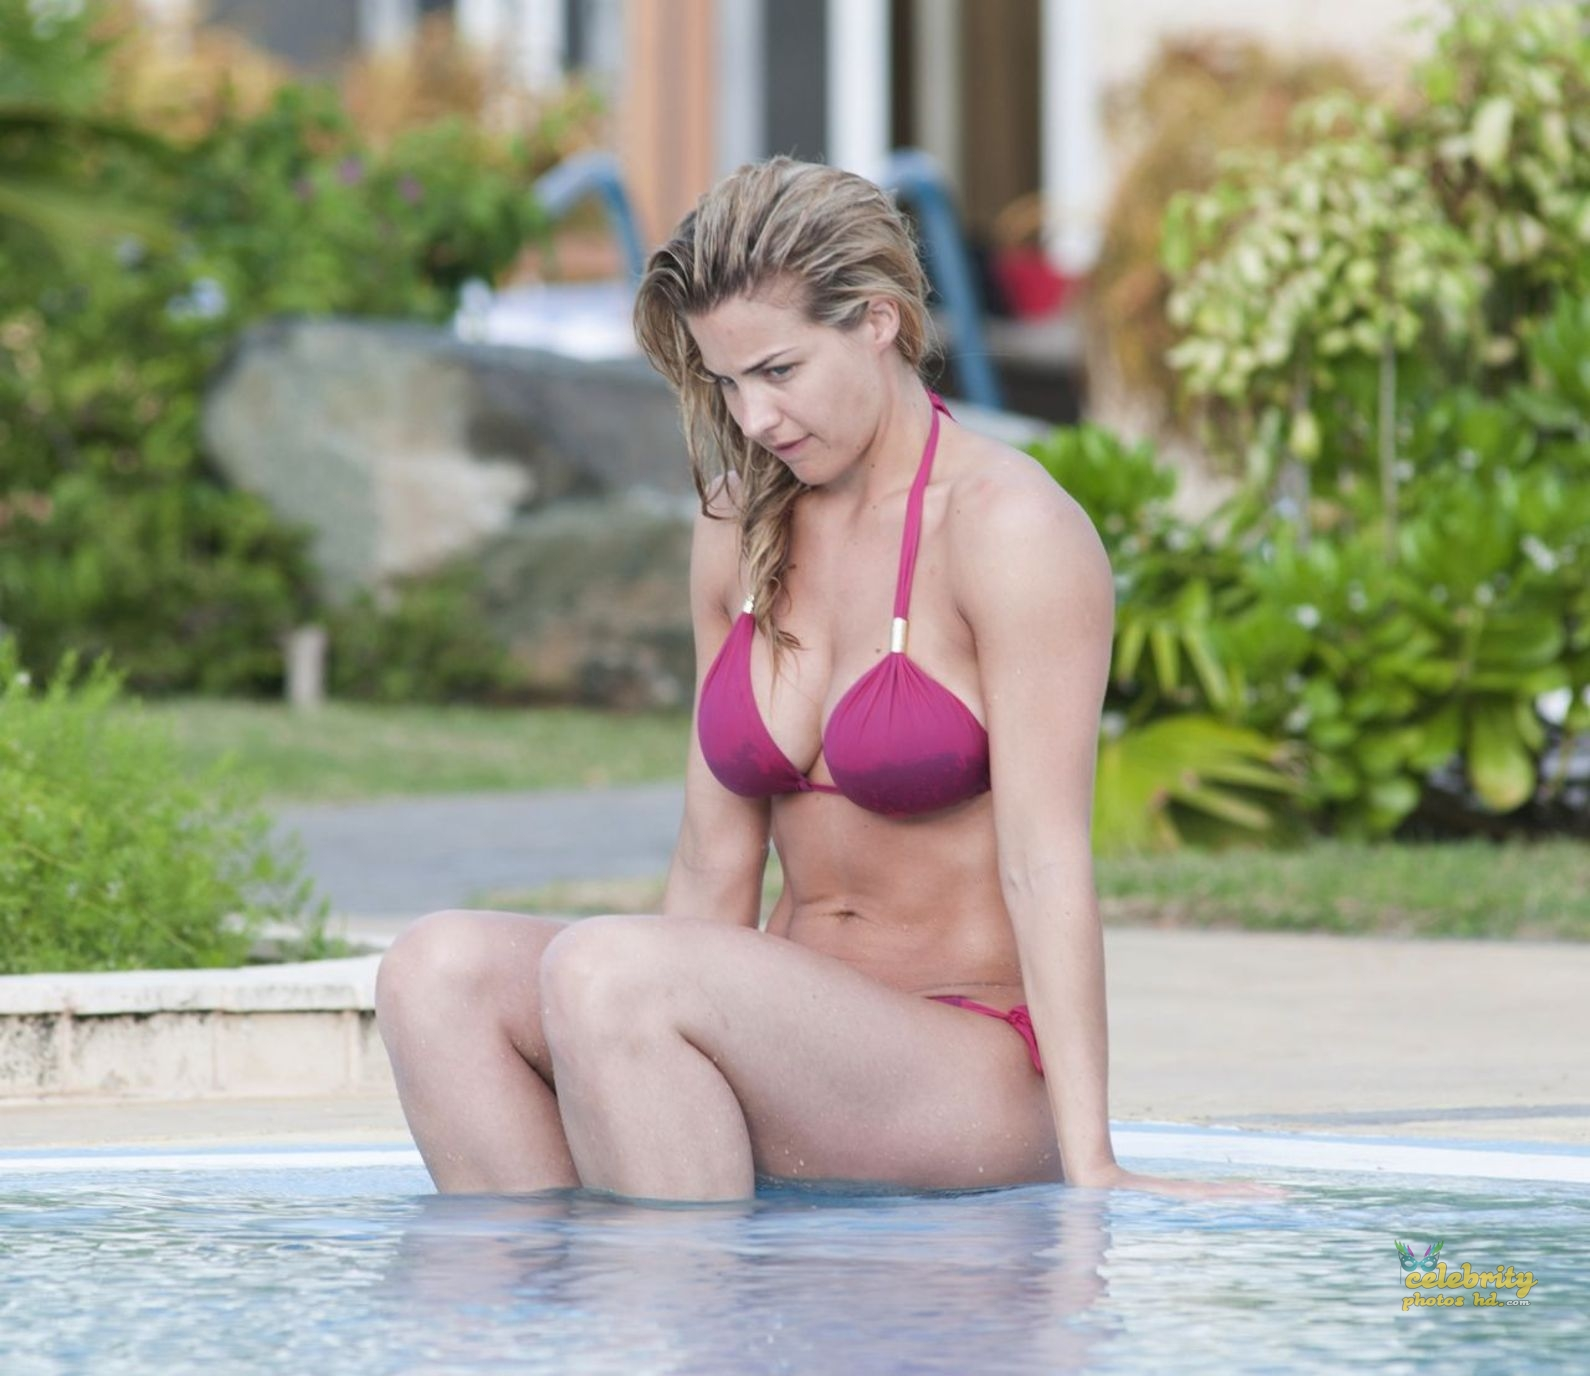 Hollywood Actress Gemma Atkinson Bikini Photo (3)